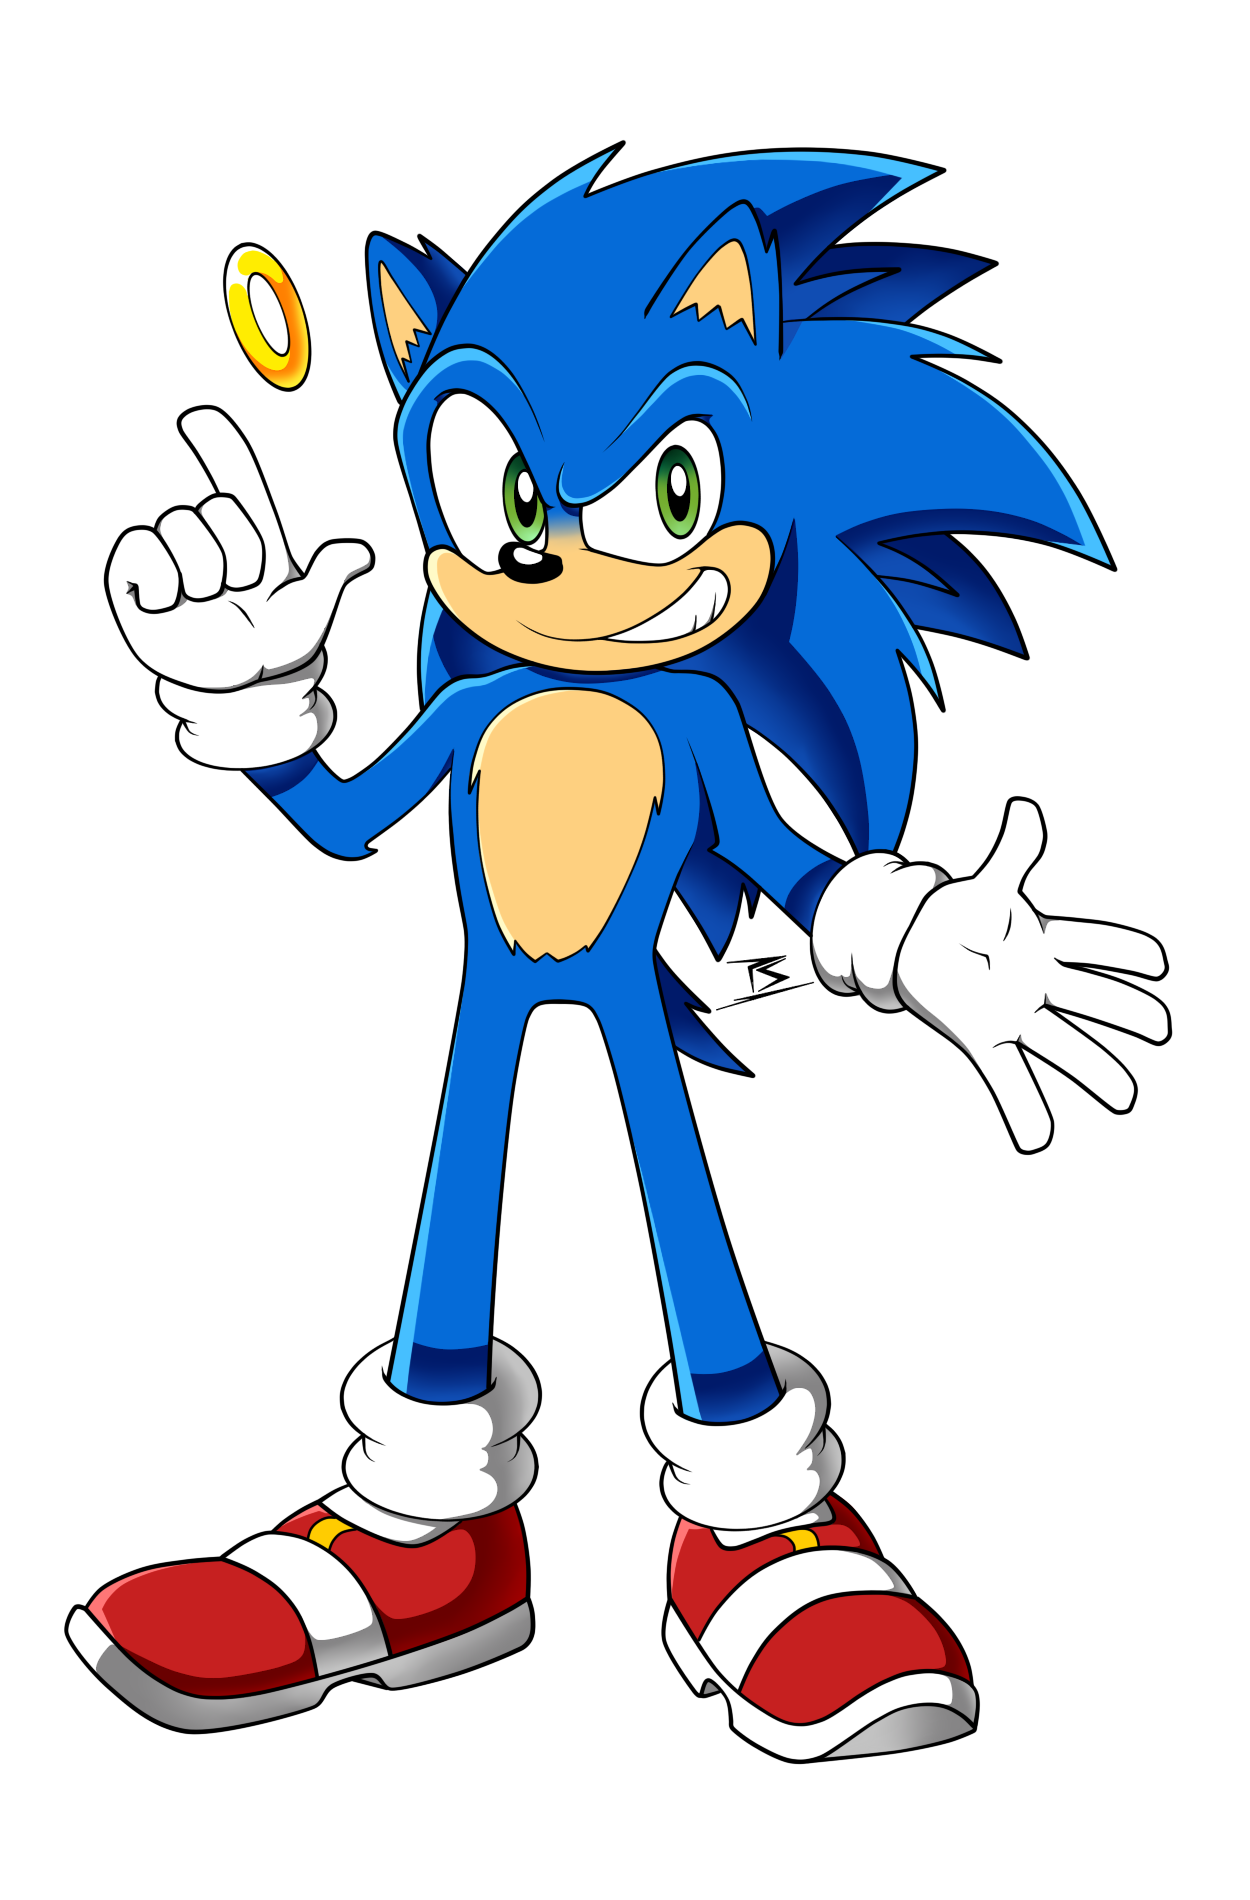 Movie Sonic Redesign By Sarkenthehedgehog On Deviantart